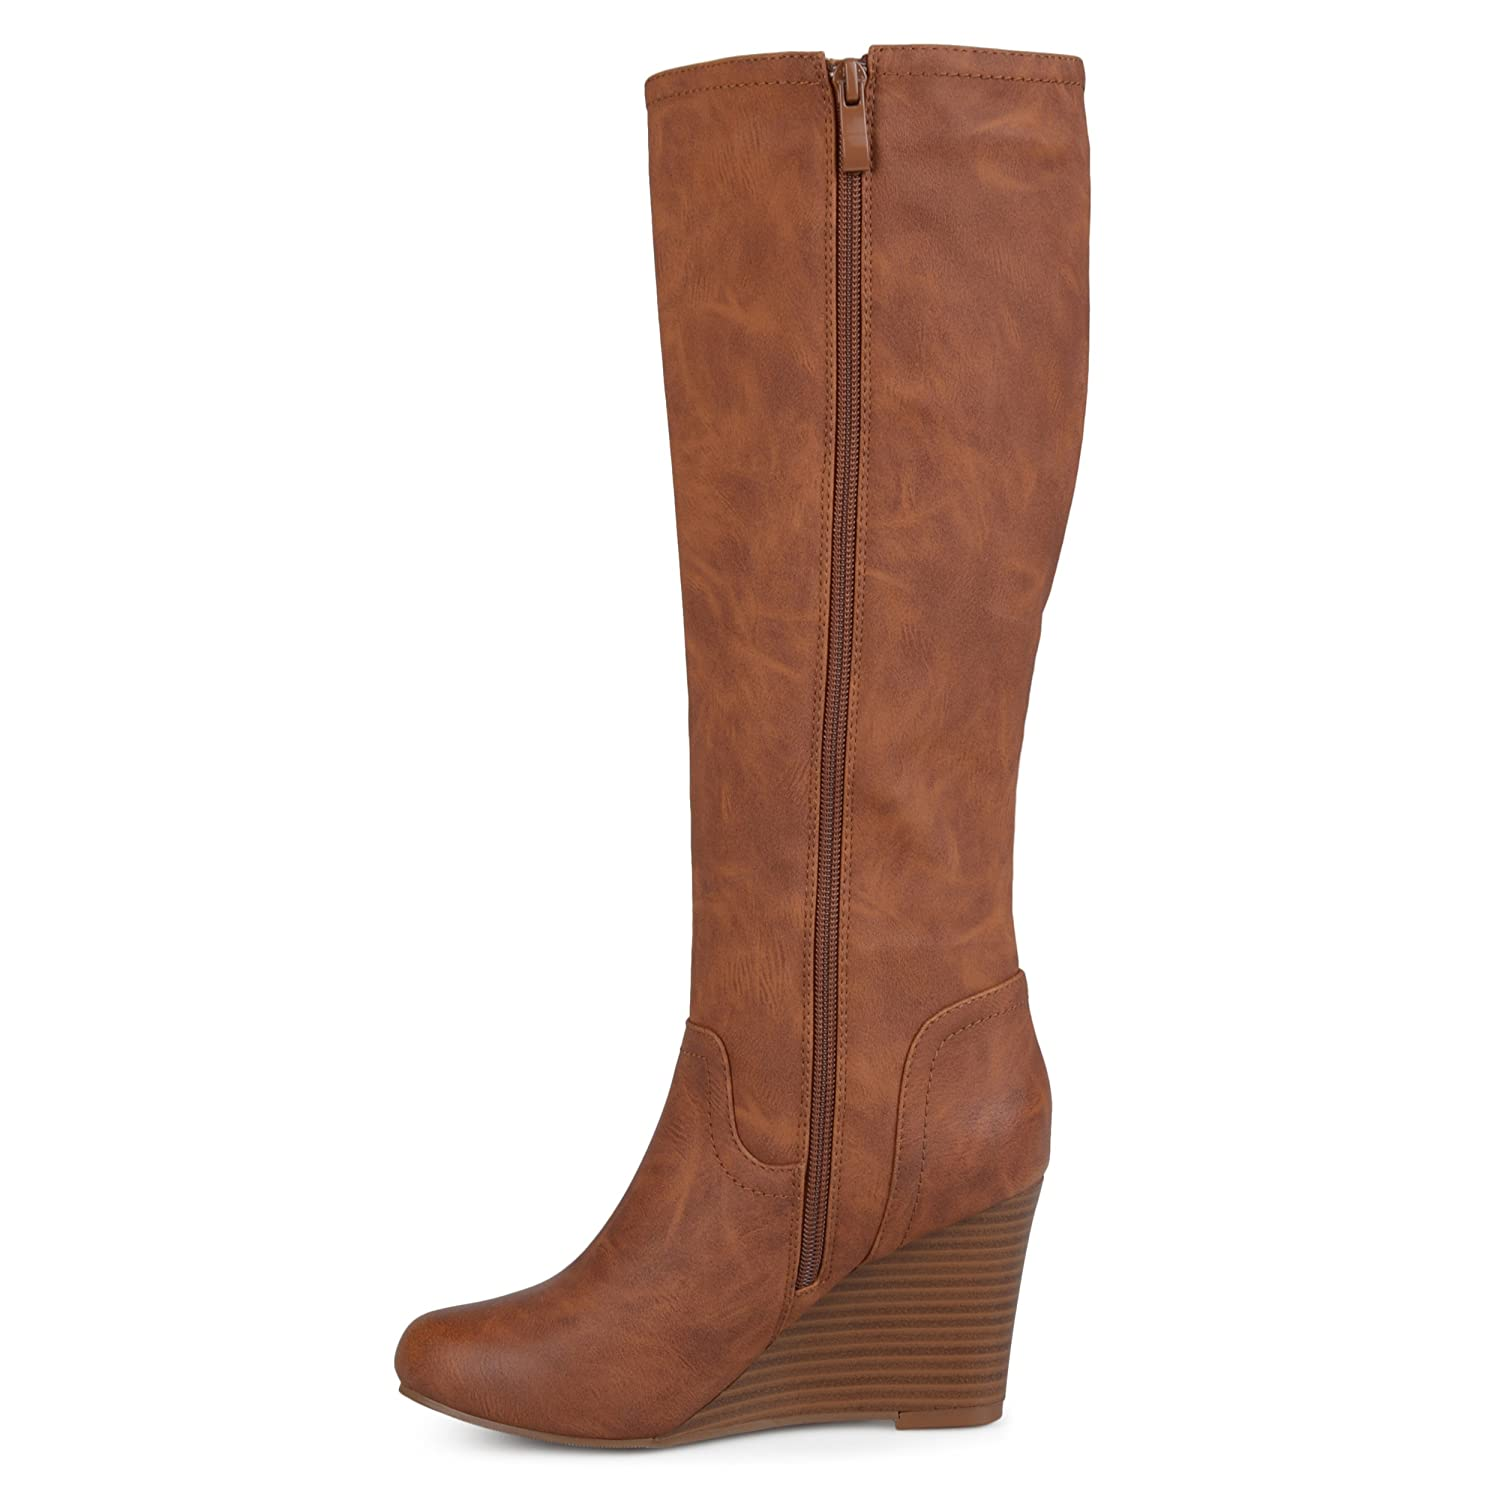 Womens Regular and Wide Calf Round Toe Faux Leather Mid-Calf Wedge Boots Brinley Co